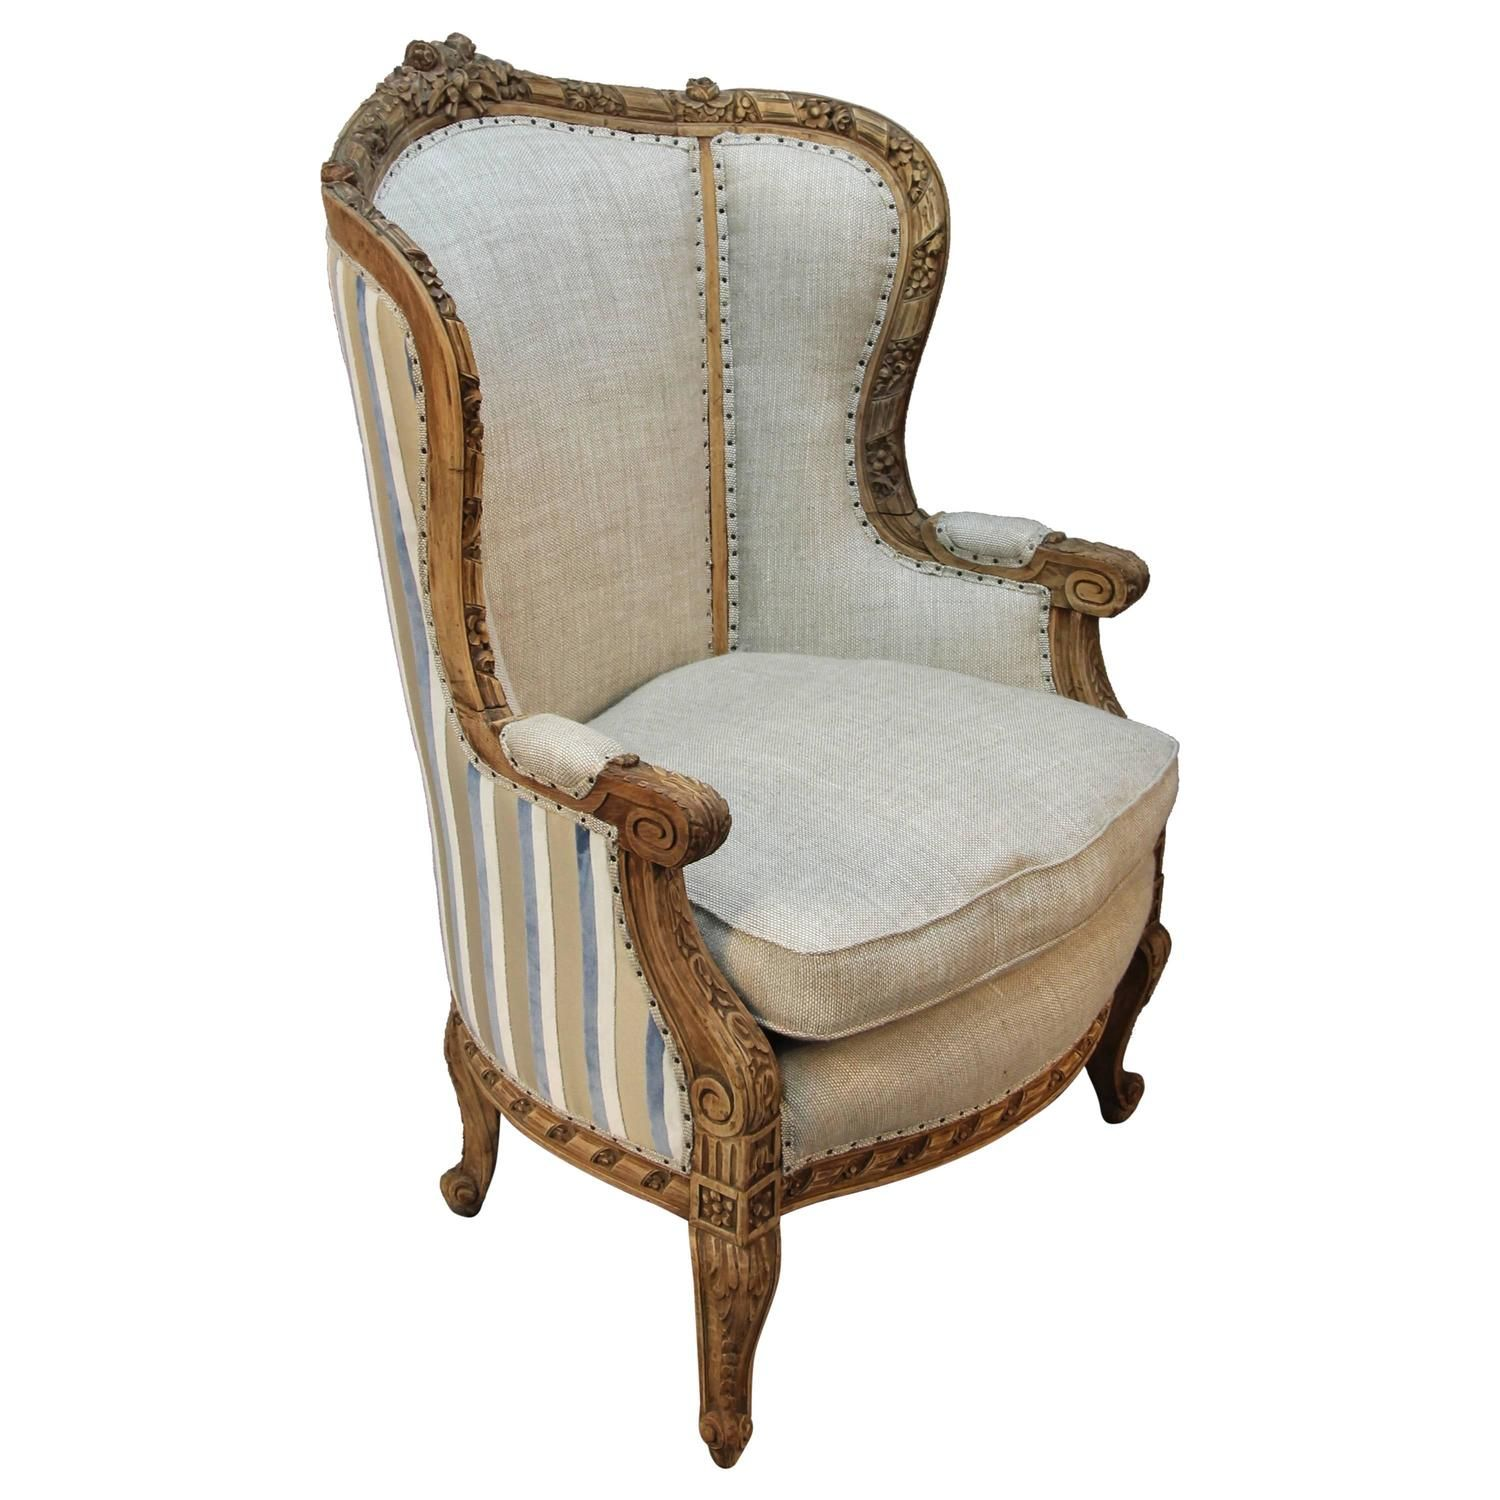 Modern savonarola chair - French Louis Xv Style Carved Wingback Bergere Armchair Circa 1900s